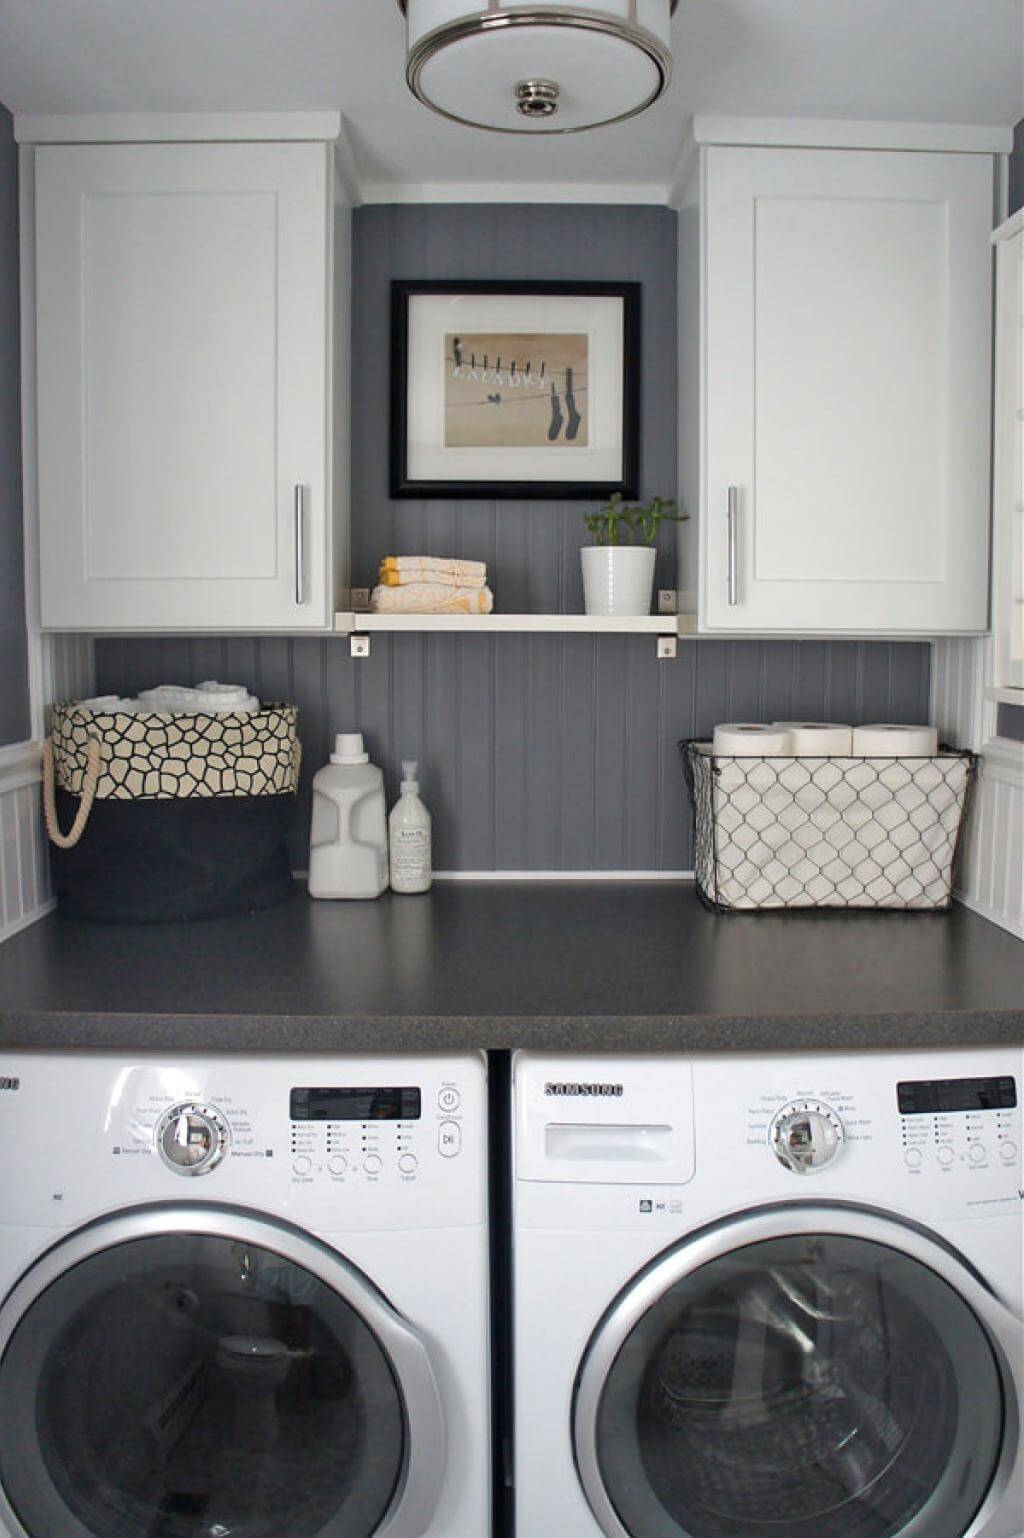 28 Best Small Laundry Room Design Ideas for 2020 on Laundry Room Decor Ideas  id=48207